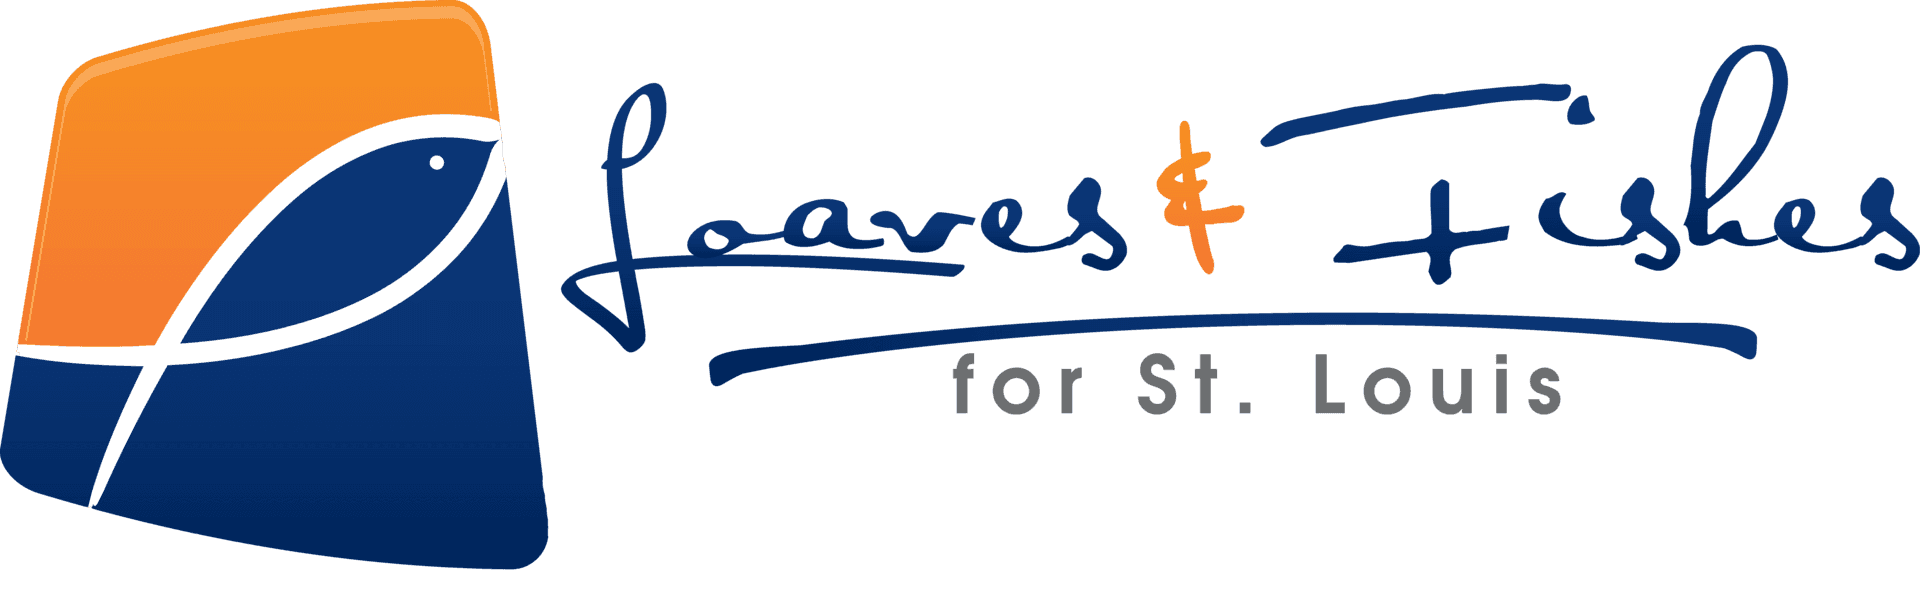 Loaves & Fishes for St. Louis - St. Louis homeless shelter